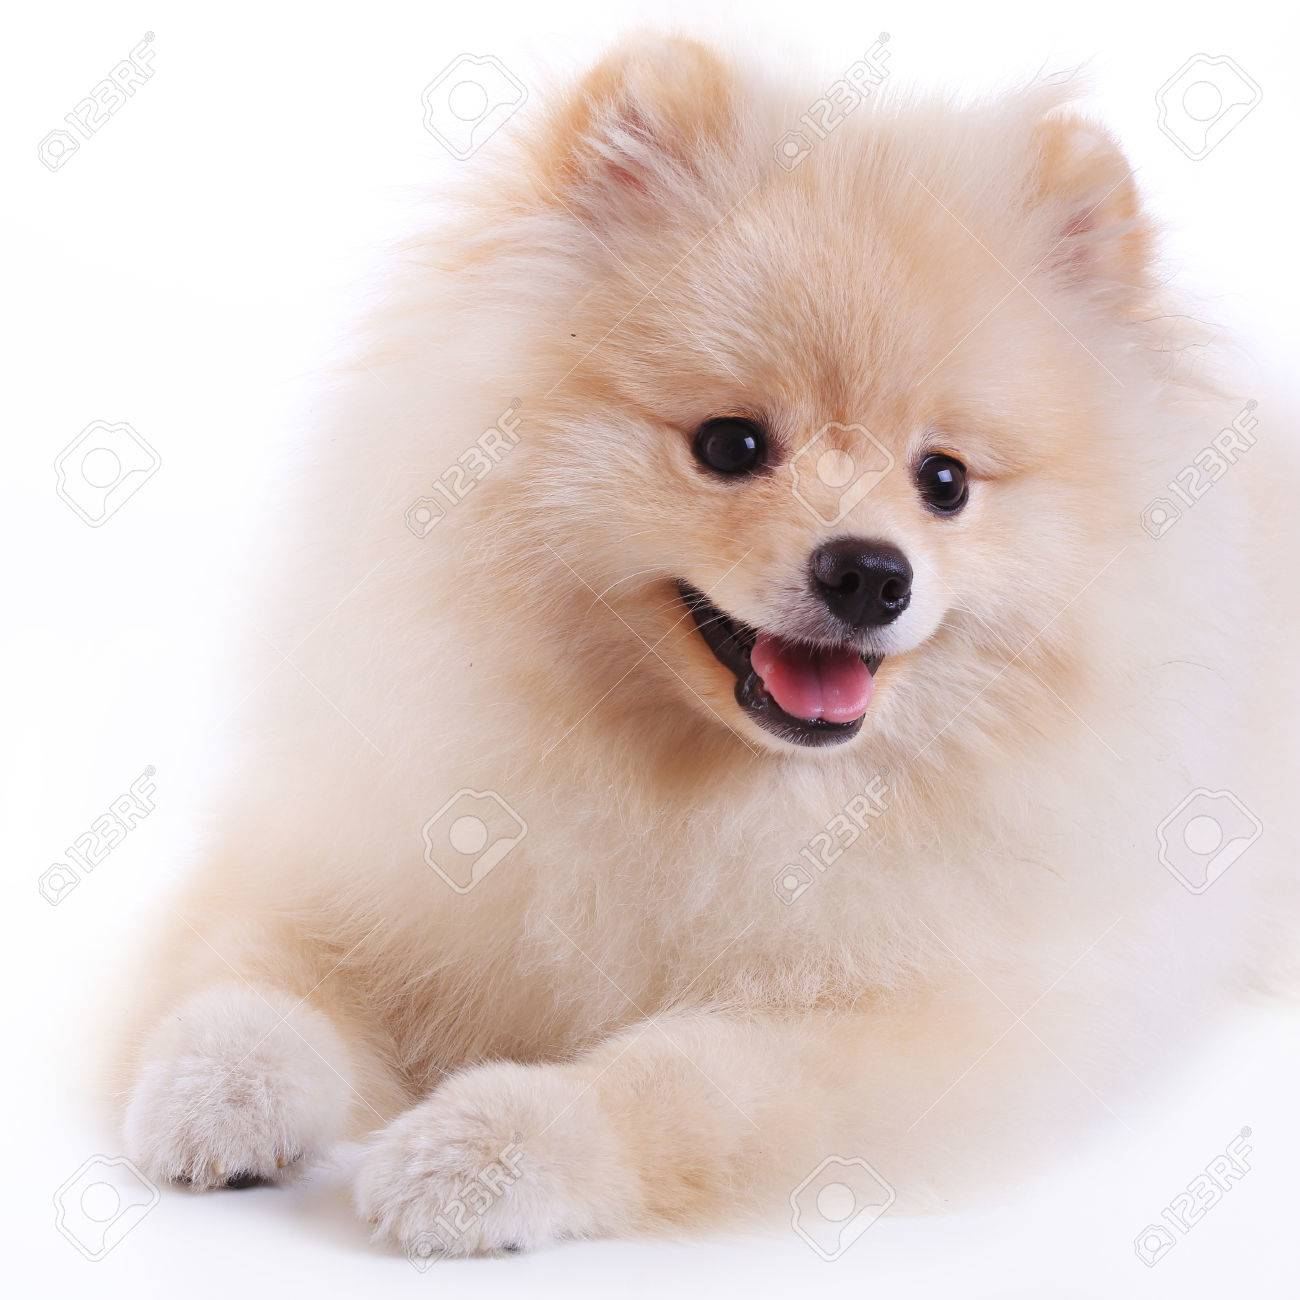 White Pomeranian Puppy Dog Cute Pet Stock Photo Picture And Royalty Free Image Image 29543908